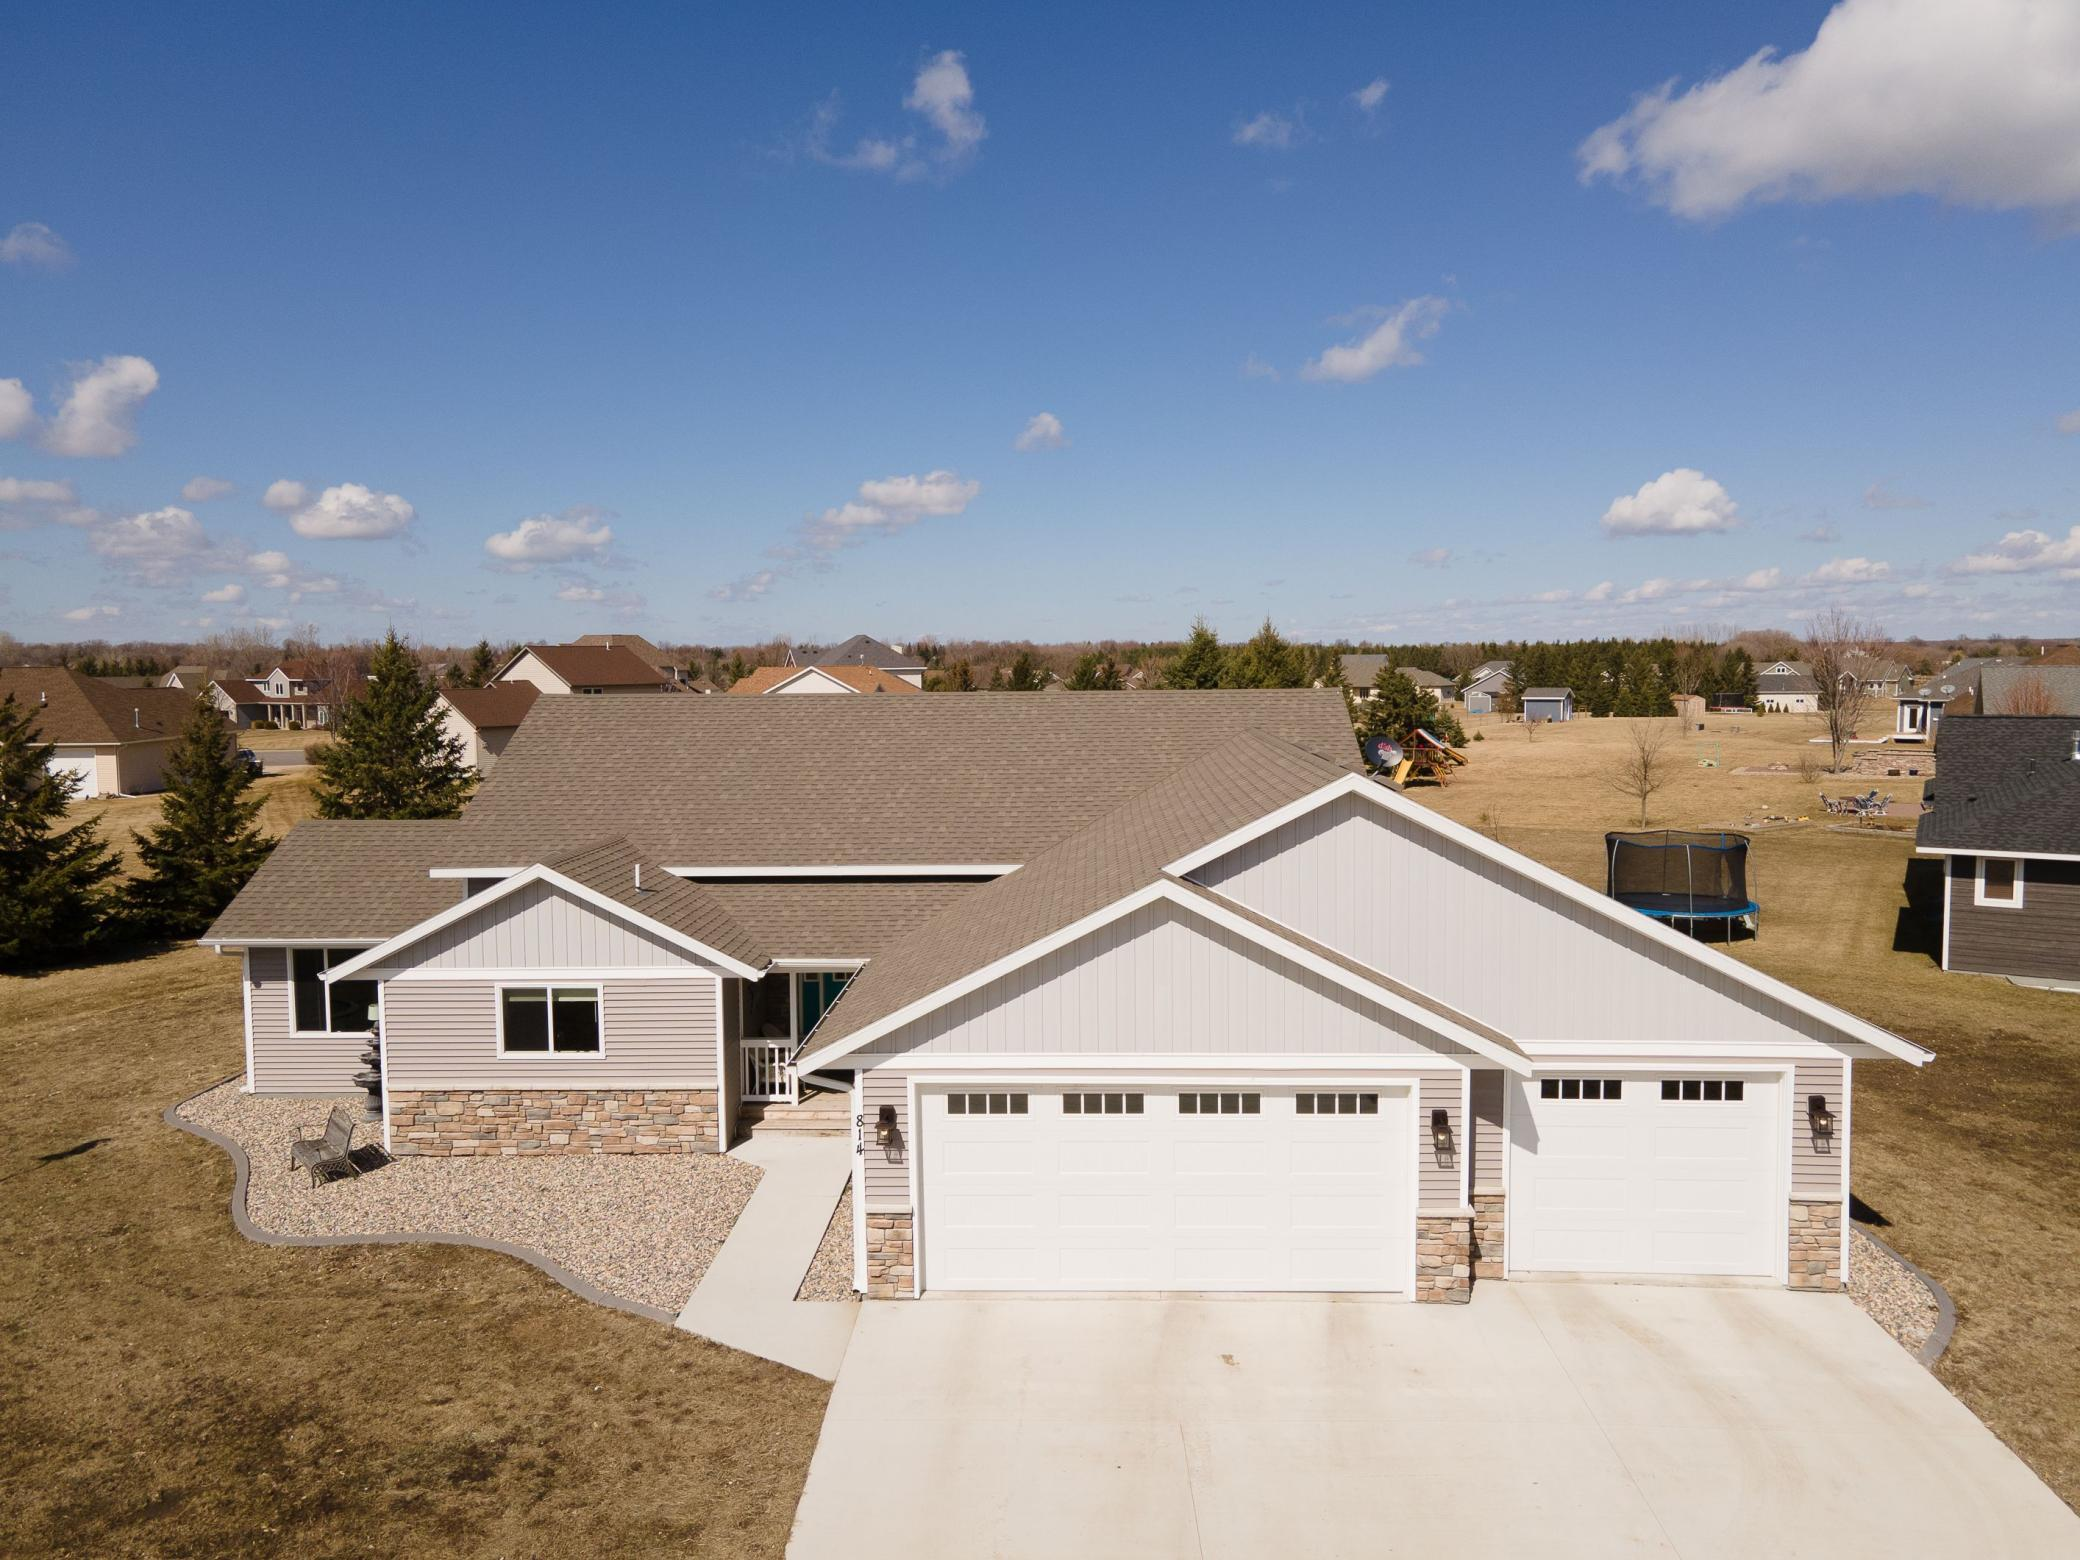 Impressive modern and classic 2017 construction with 4 bedrooms and 4 bathrooms. As you enter the home you will be impressed with the open floor plan. The kitchen features a center island with seating, a walk in pantry and white cabinetry. Relax in the sun room that has a beautiful gas fireplace, and connects to the outdoor patio area through sliding doors. Step up to the living room, master bedroom with private master bath, 2nd bedroom and full bathroom. The lower level welcomes your family for gatherings with a large family room. In the lower level you will also find 2 more spacious bedrooms, full bathroom, laundry, and storage galore. There is also a 3 stall garage with access to the main and lower level of the home. There is a neighborhood park that is right out your back yard to expand your green space. It is also close to downtown and the Central Lakes Trail! Come and look today!